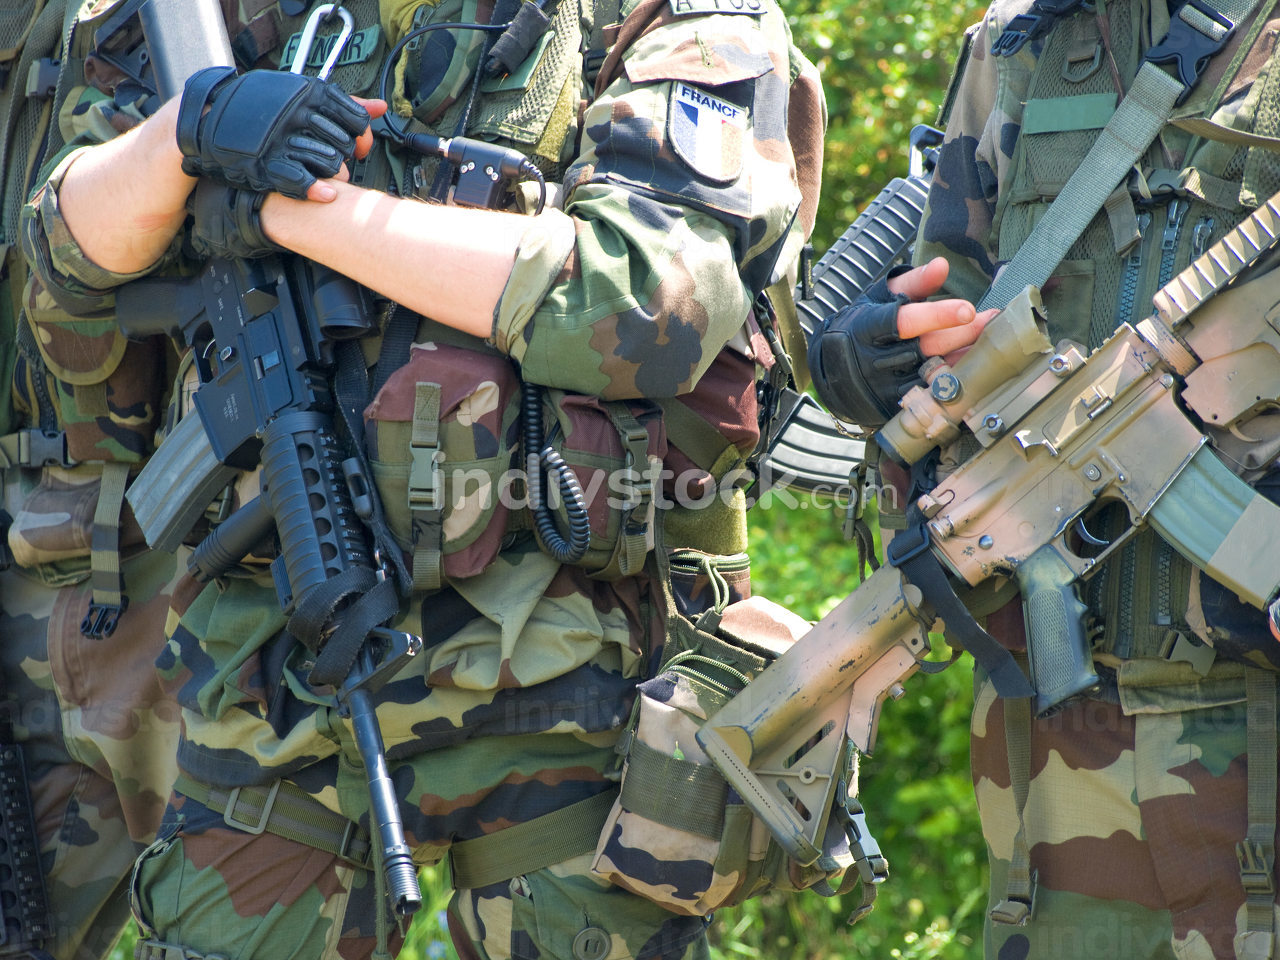 French soldiers in camouflage uniform holding their rifles